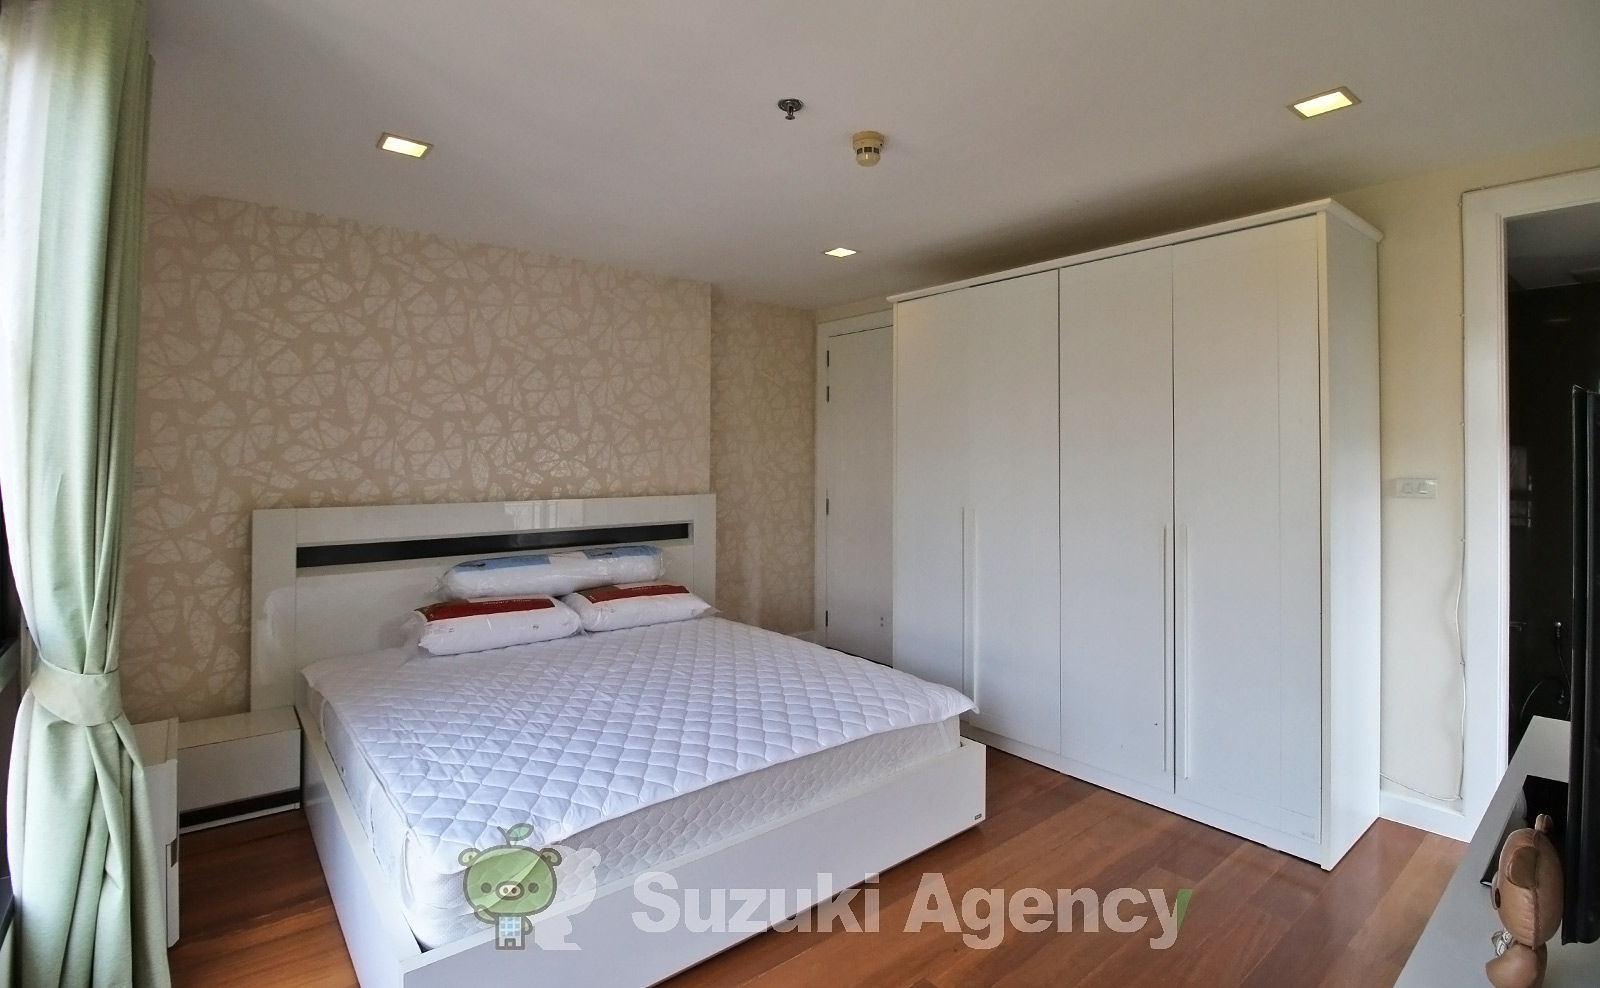 Prime Mansion Sukhumvit 31:2Bed Room Photos No.8